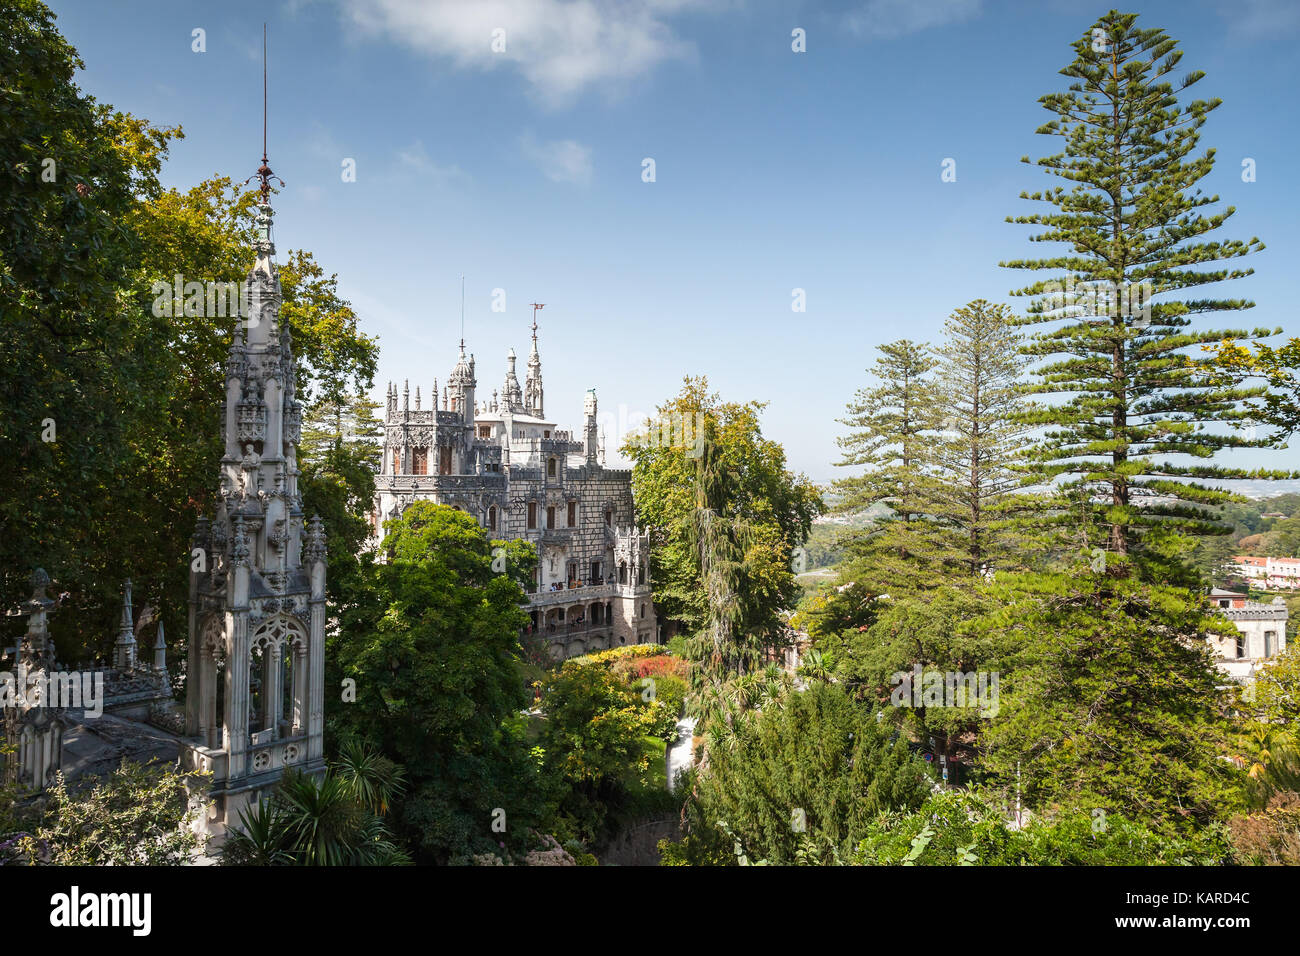 Palace and chapel of Quinta da Regaleira is an estate located near the historic center of Sintra, Portugal. It was - Stock Image